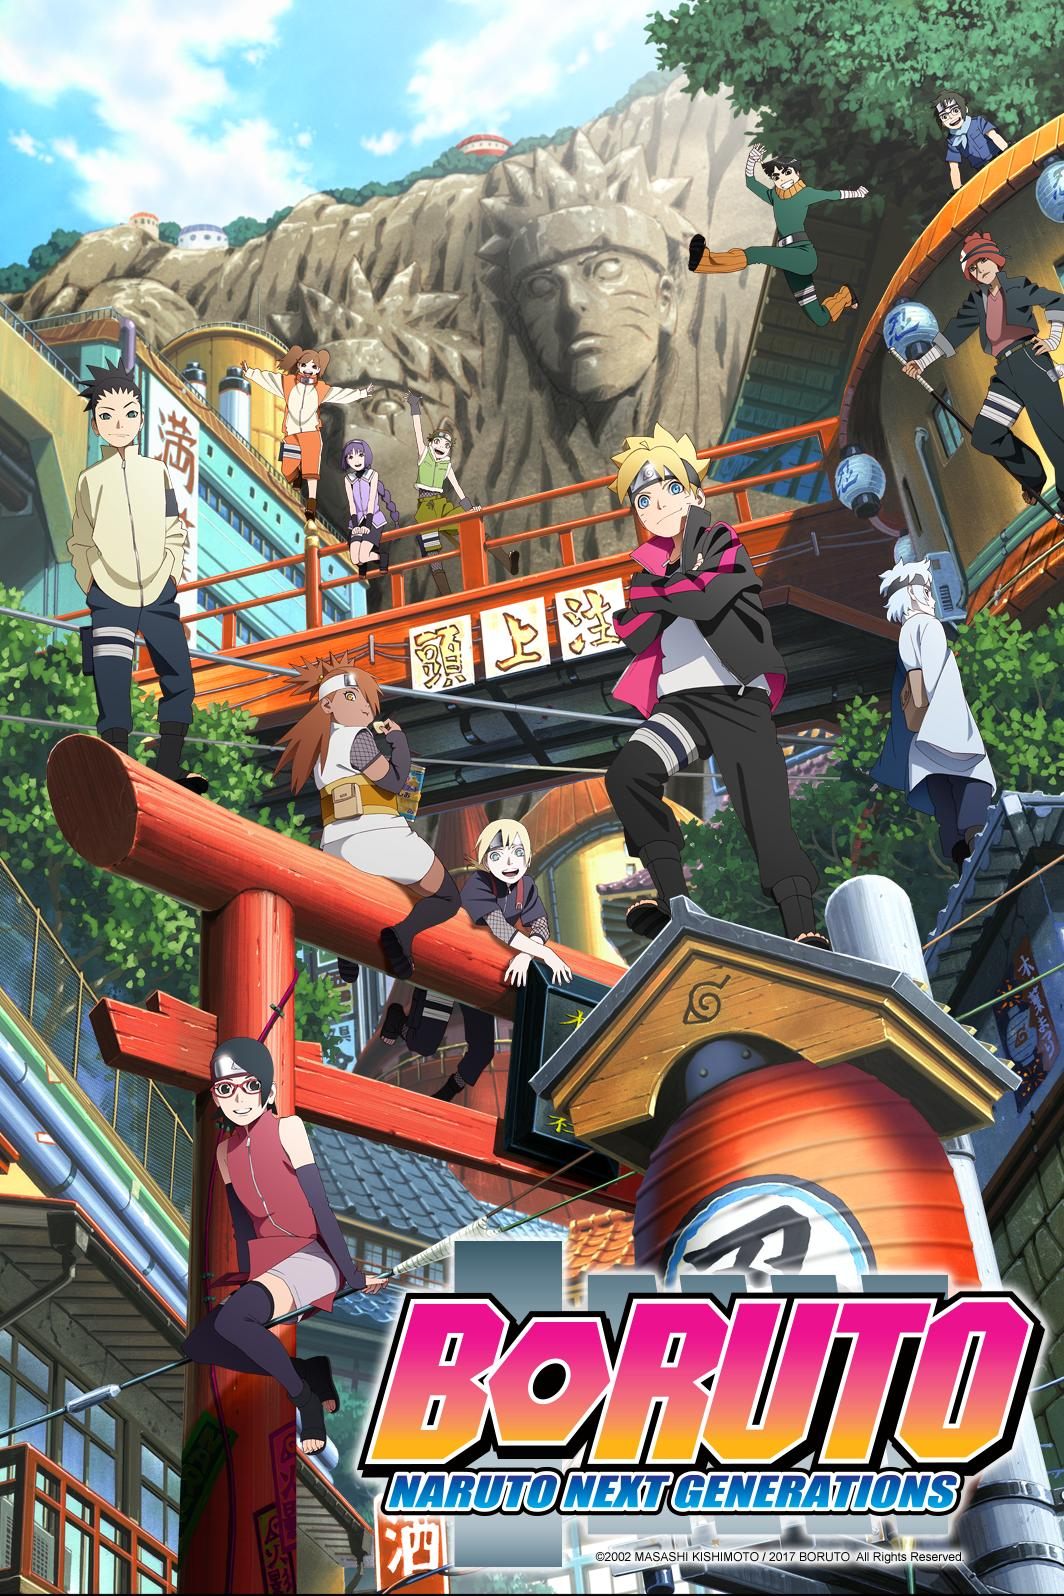 BORUTO: NARUTO NEXT GENERATIONS - Watch on Crunchyroll